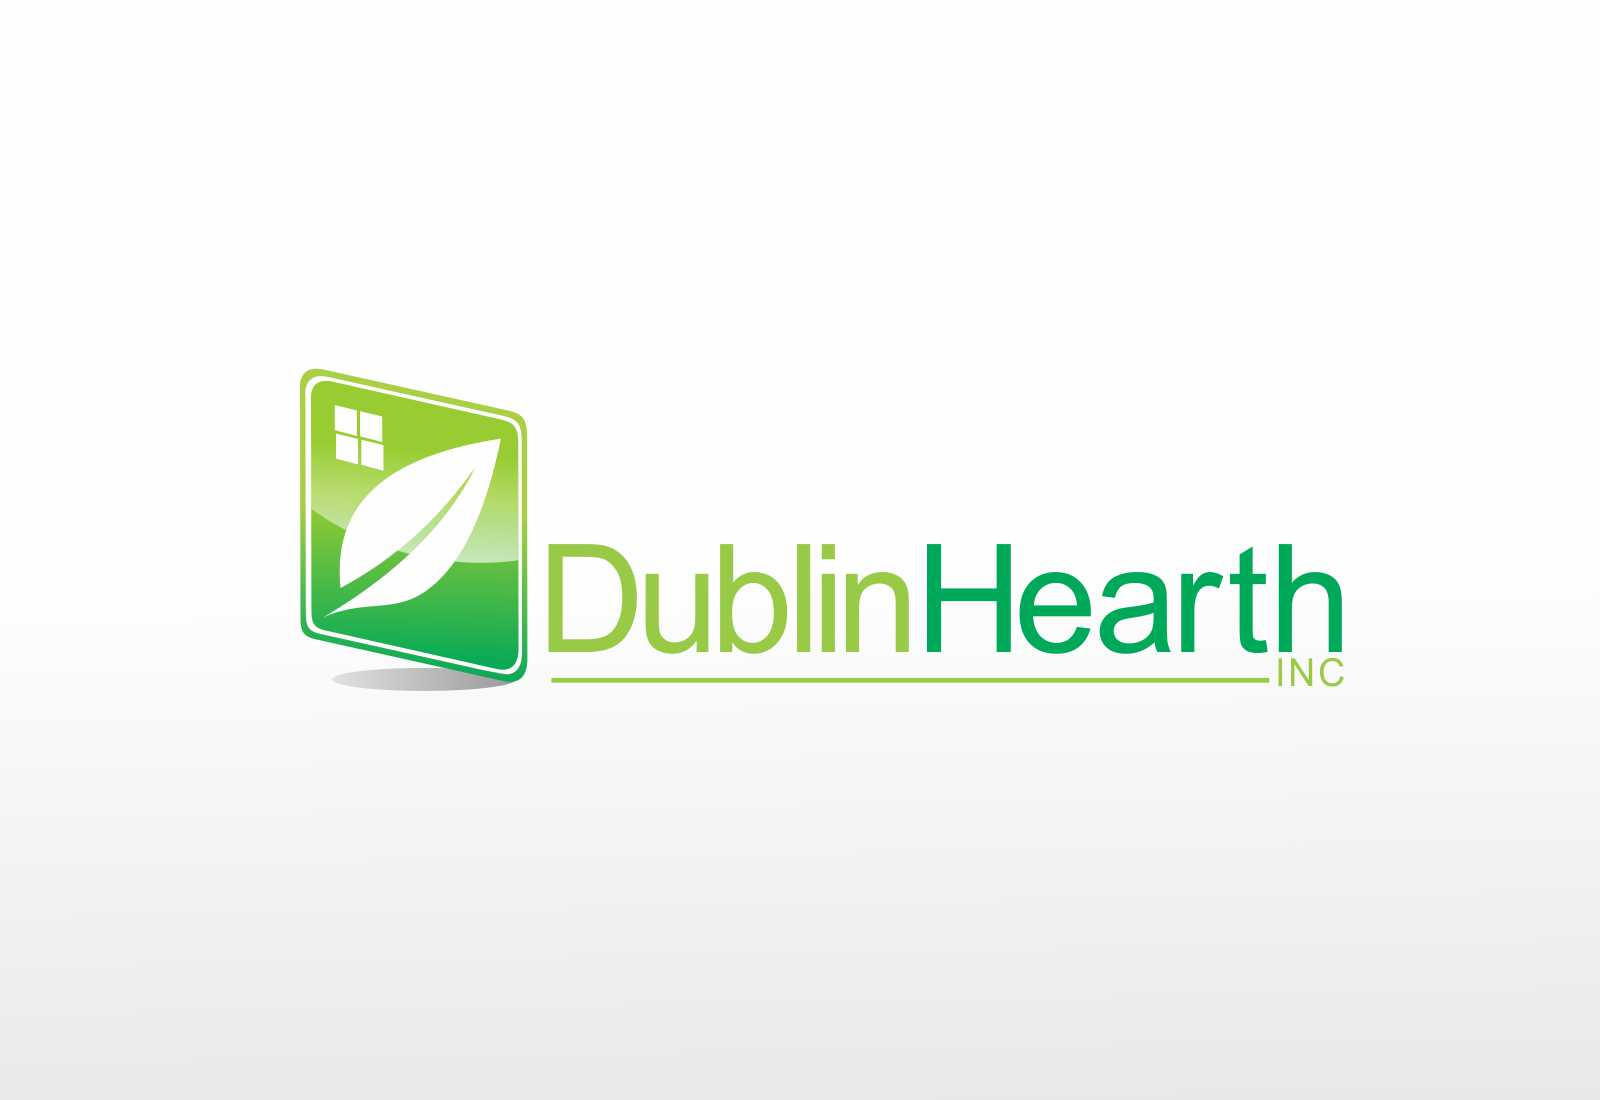 Logo Design by Web Sourcing - Entry No. 118 in the Logo Design Contest clean professional  Logo Design for Dublin Hearth Inc. with a splash of fun with letter head.